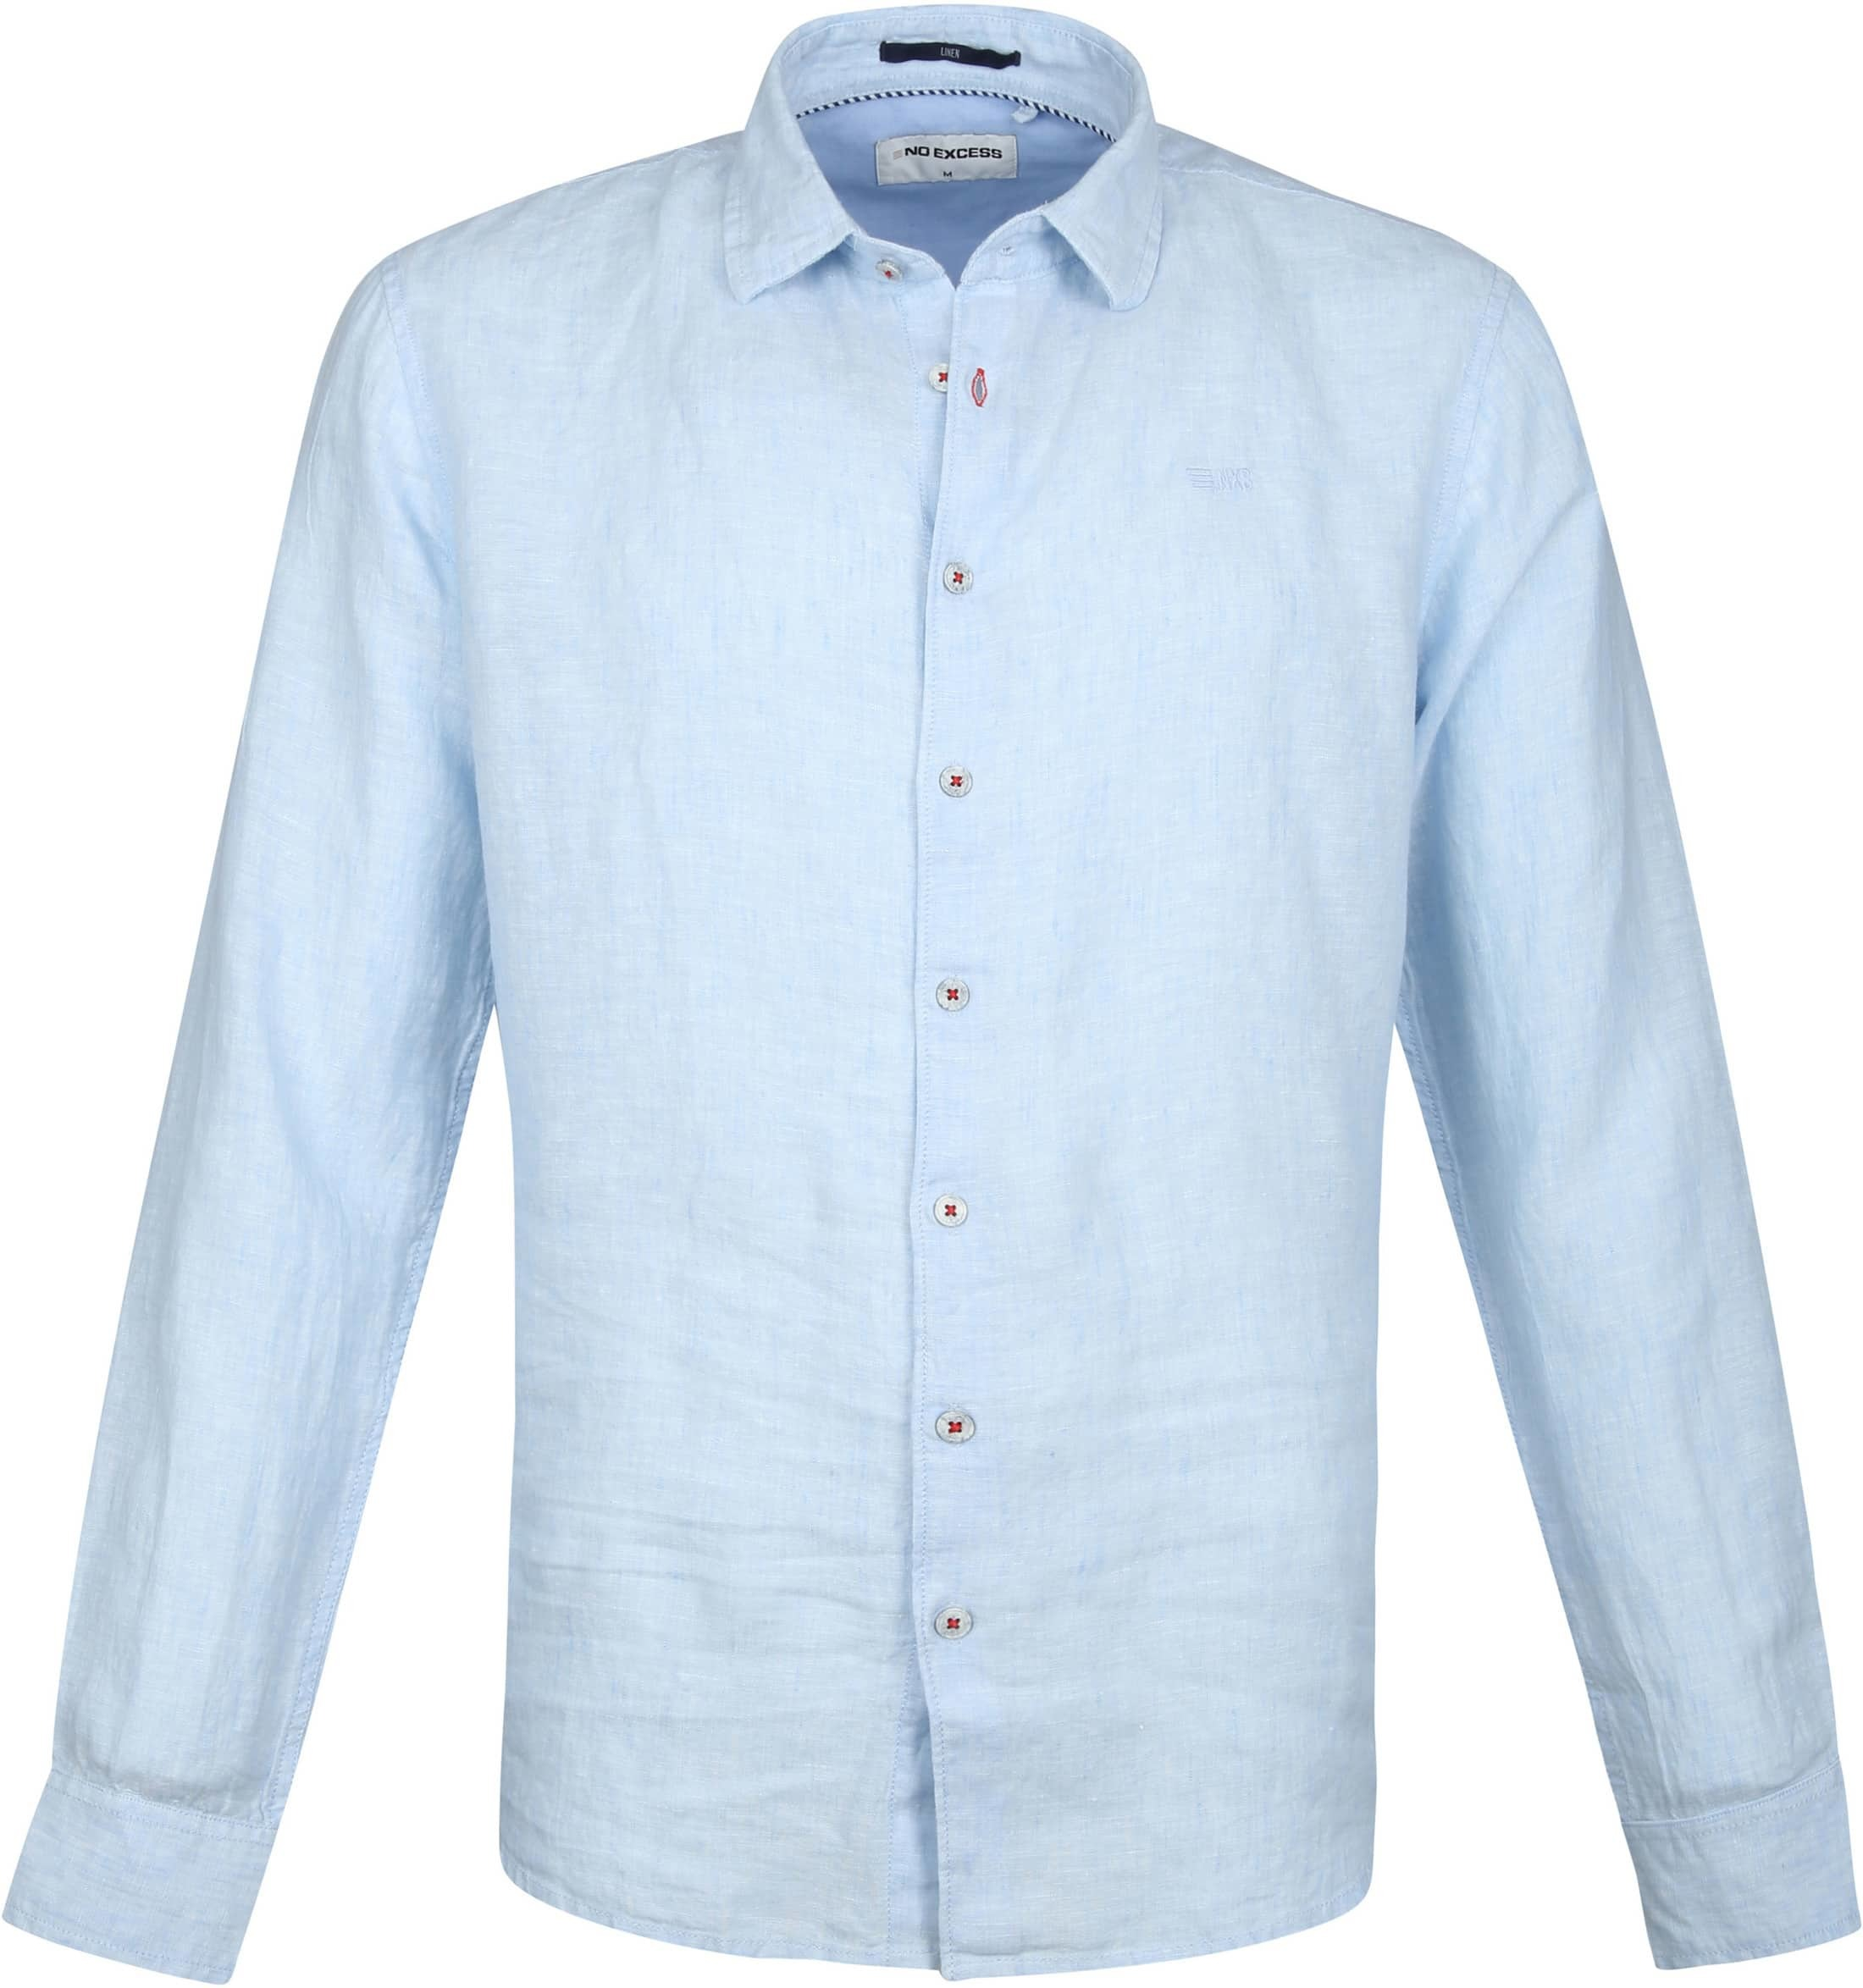 No-Excess Linen Shirt Light Blue